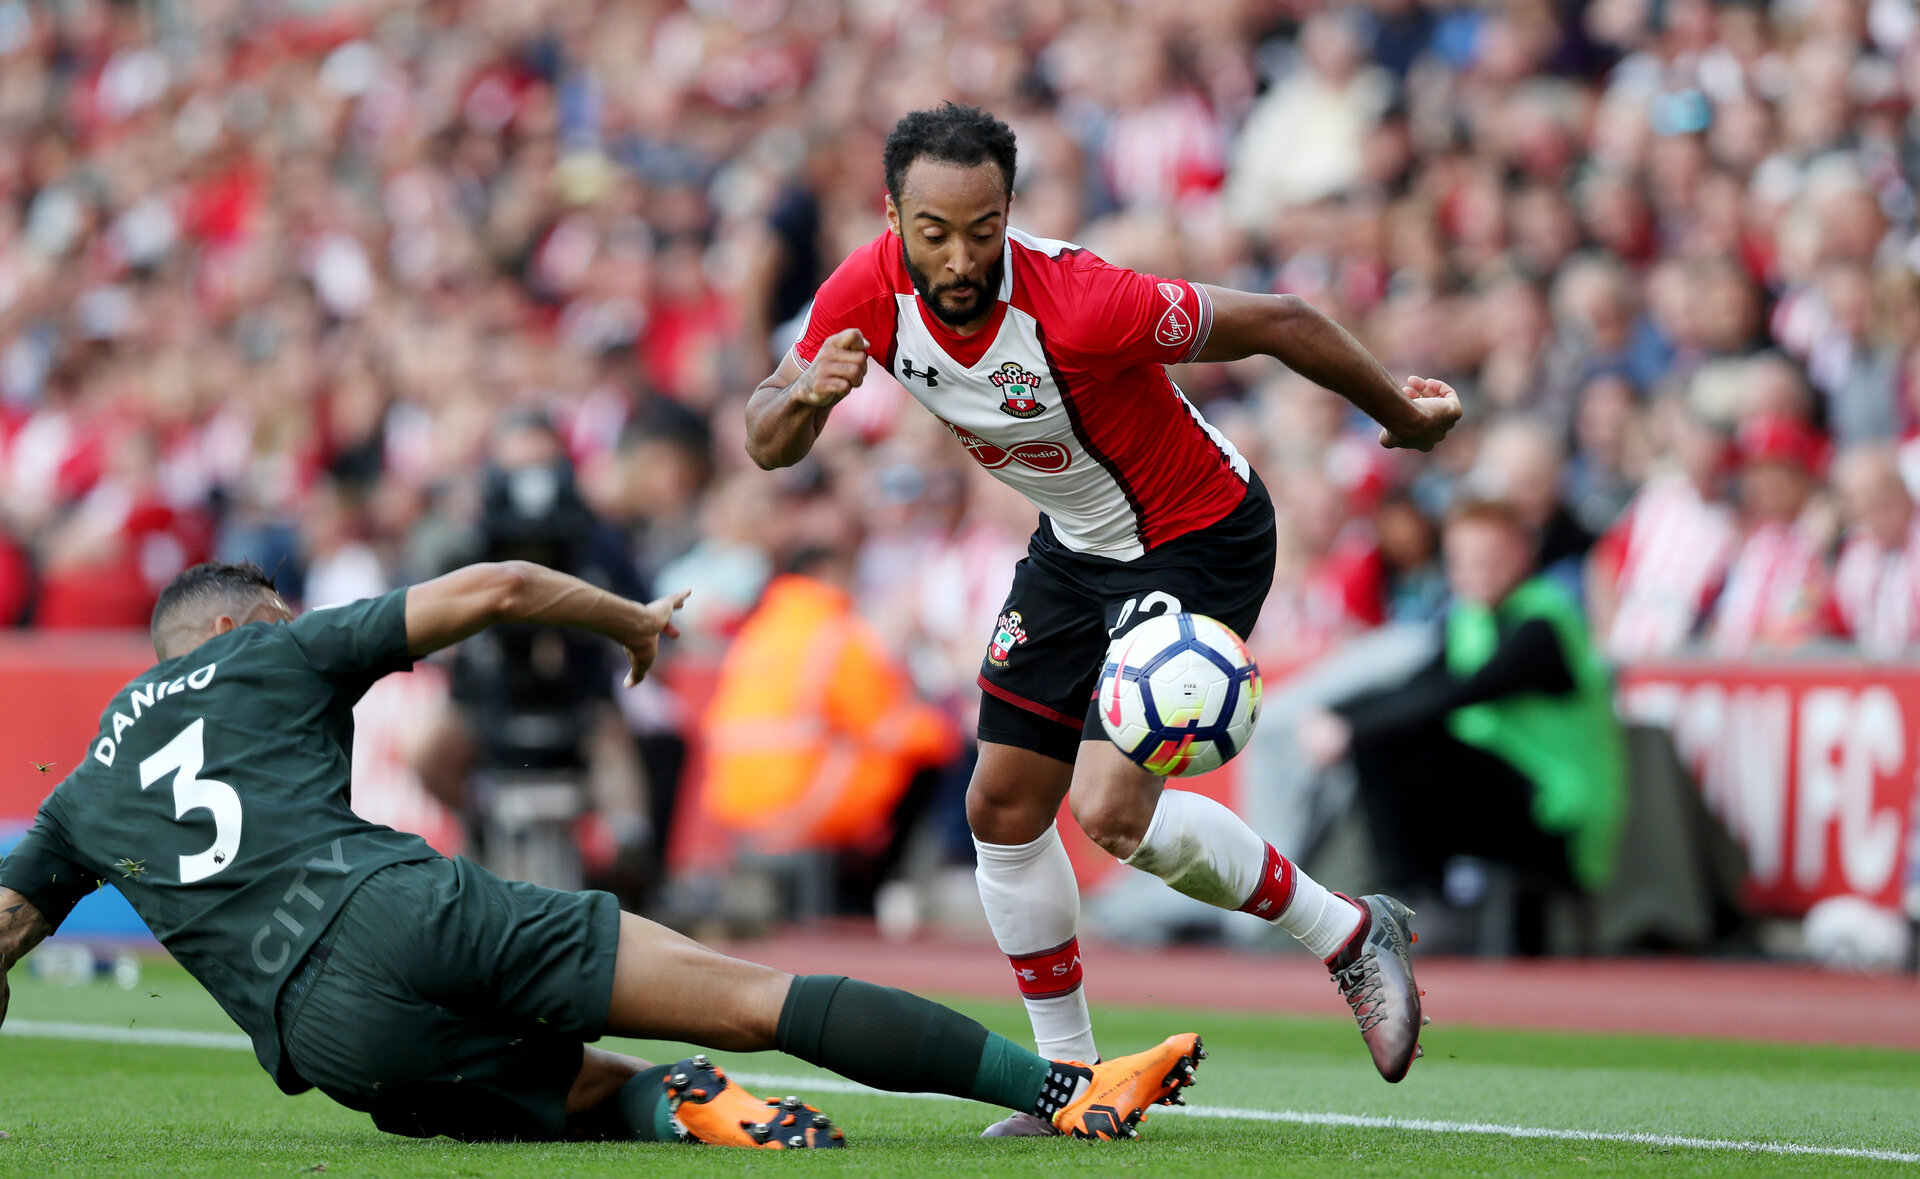 SOUTHAMPTON, ENGLAND - MAY 13: Nathan Redmond(R) of Southampton skips past Danilo of Manchester City during the Premier League match between Southampton and Manchester City at St Mary's Stadium on May 13, 2018 in Southampton, England. (Photo by Matt Watson/Southampton FC via Getty Images)